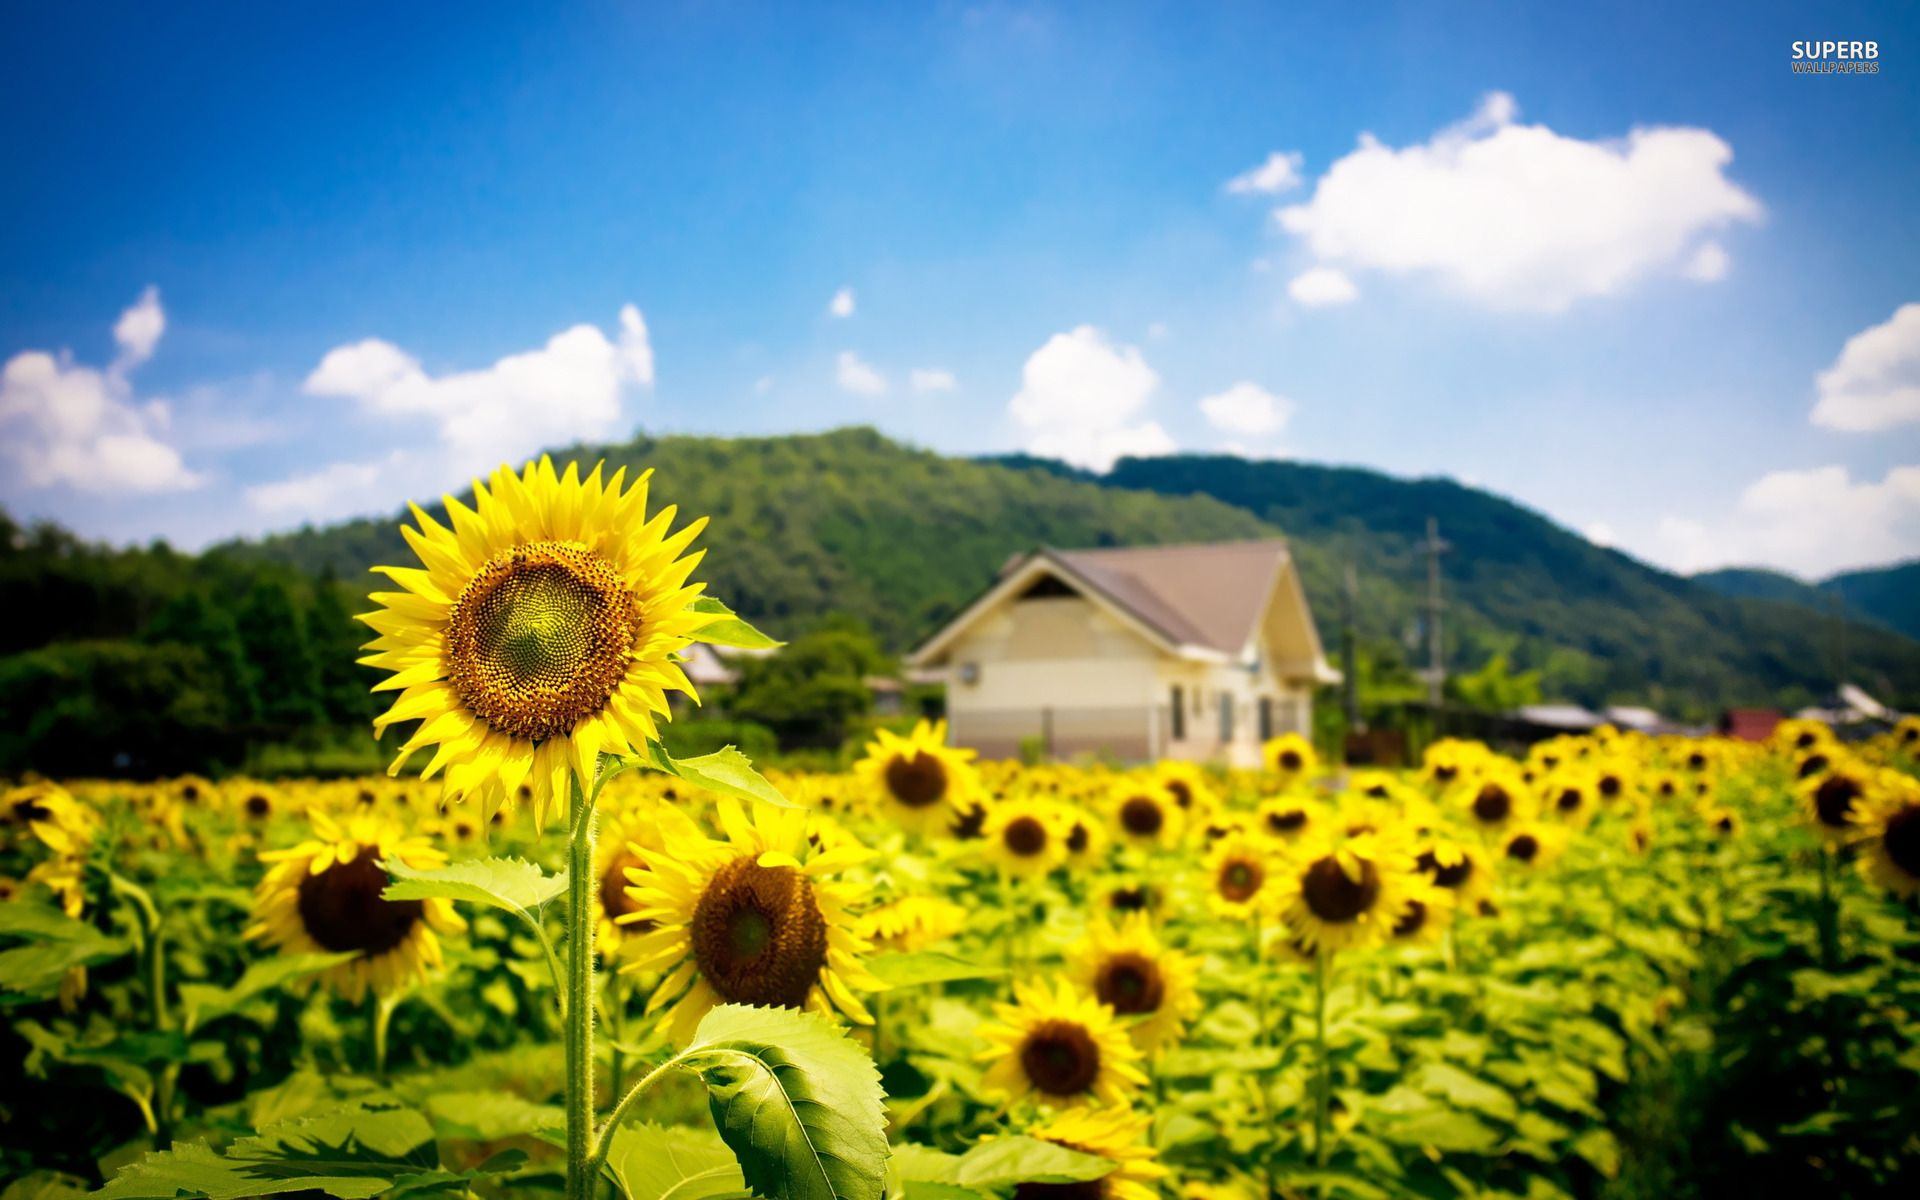 Field Of Sunflowers Wallpaper: Sunflower Field Photography Hd Images 3 HD Wallpapers